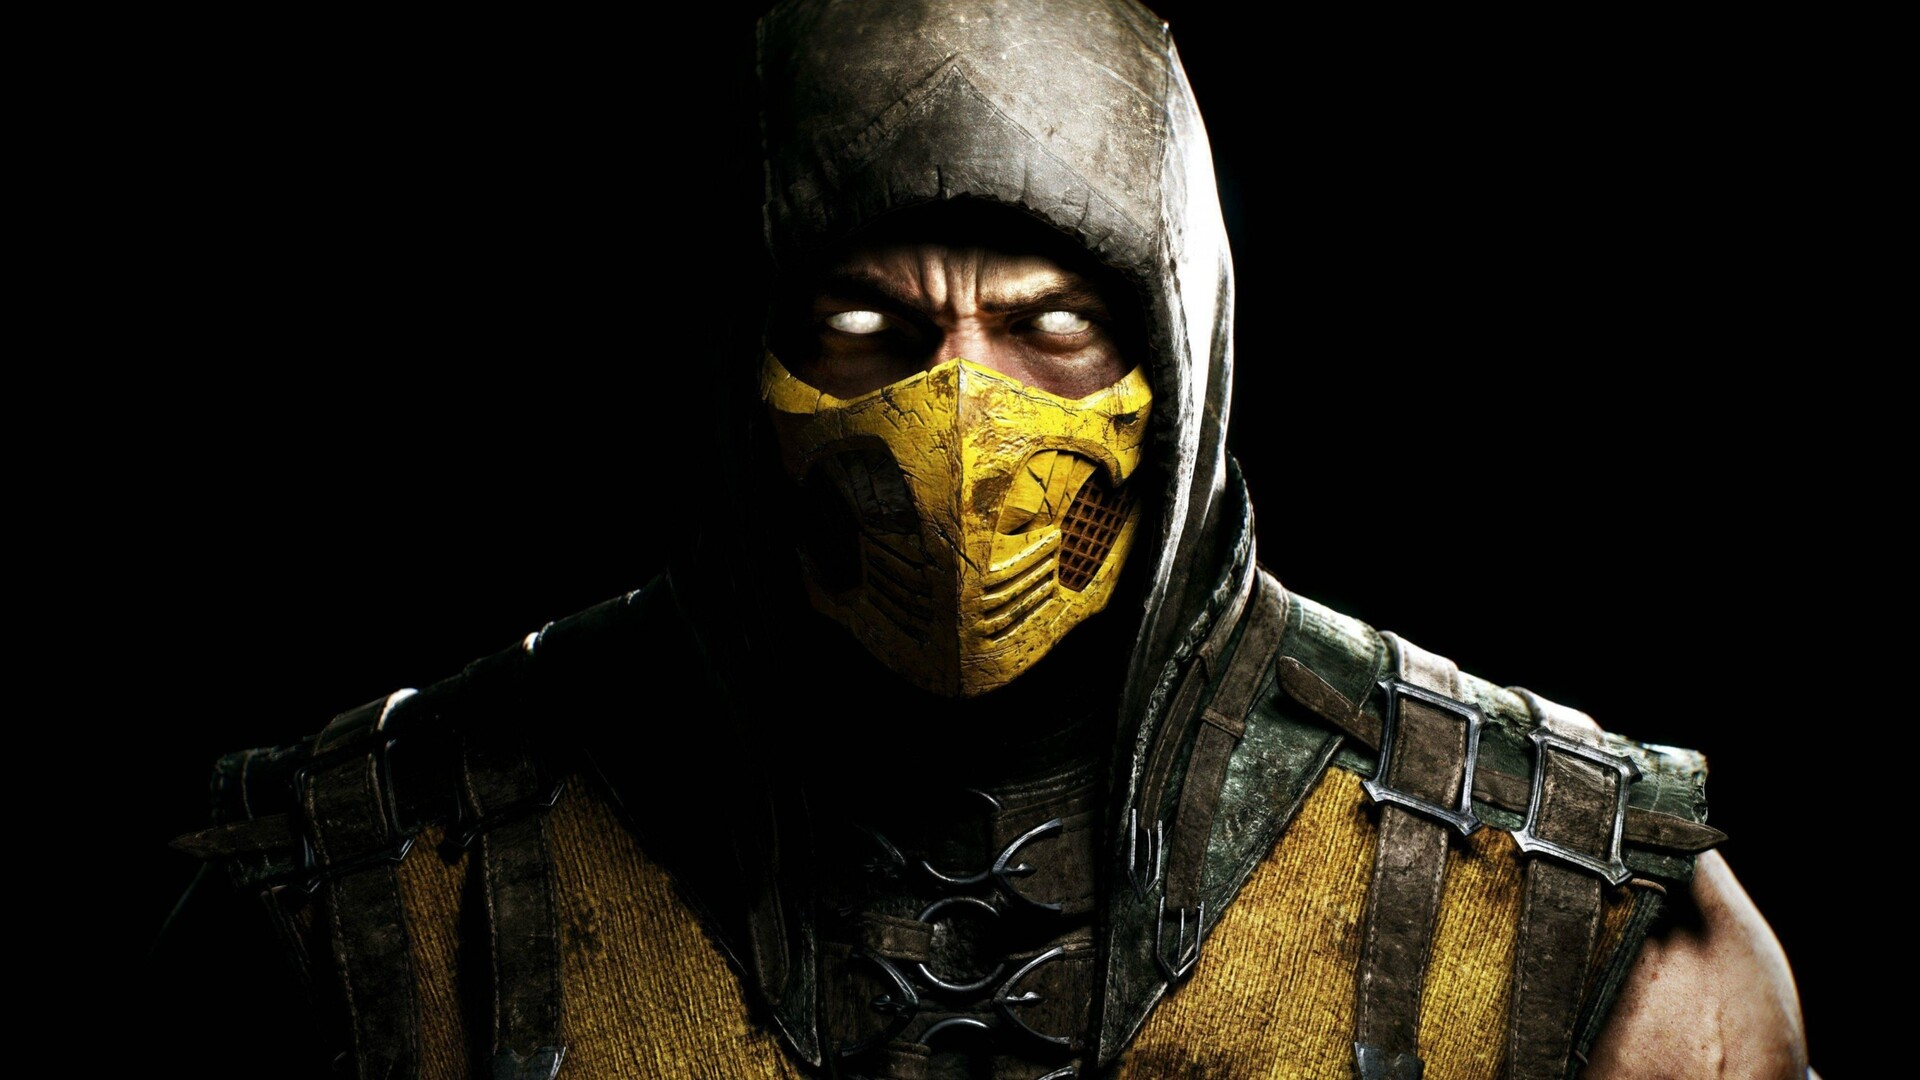 1920x1080 Scorpion In Mortal Kombat Laptop Full Hd 1080p Hd 4k